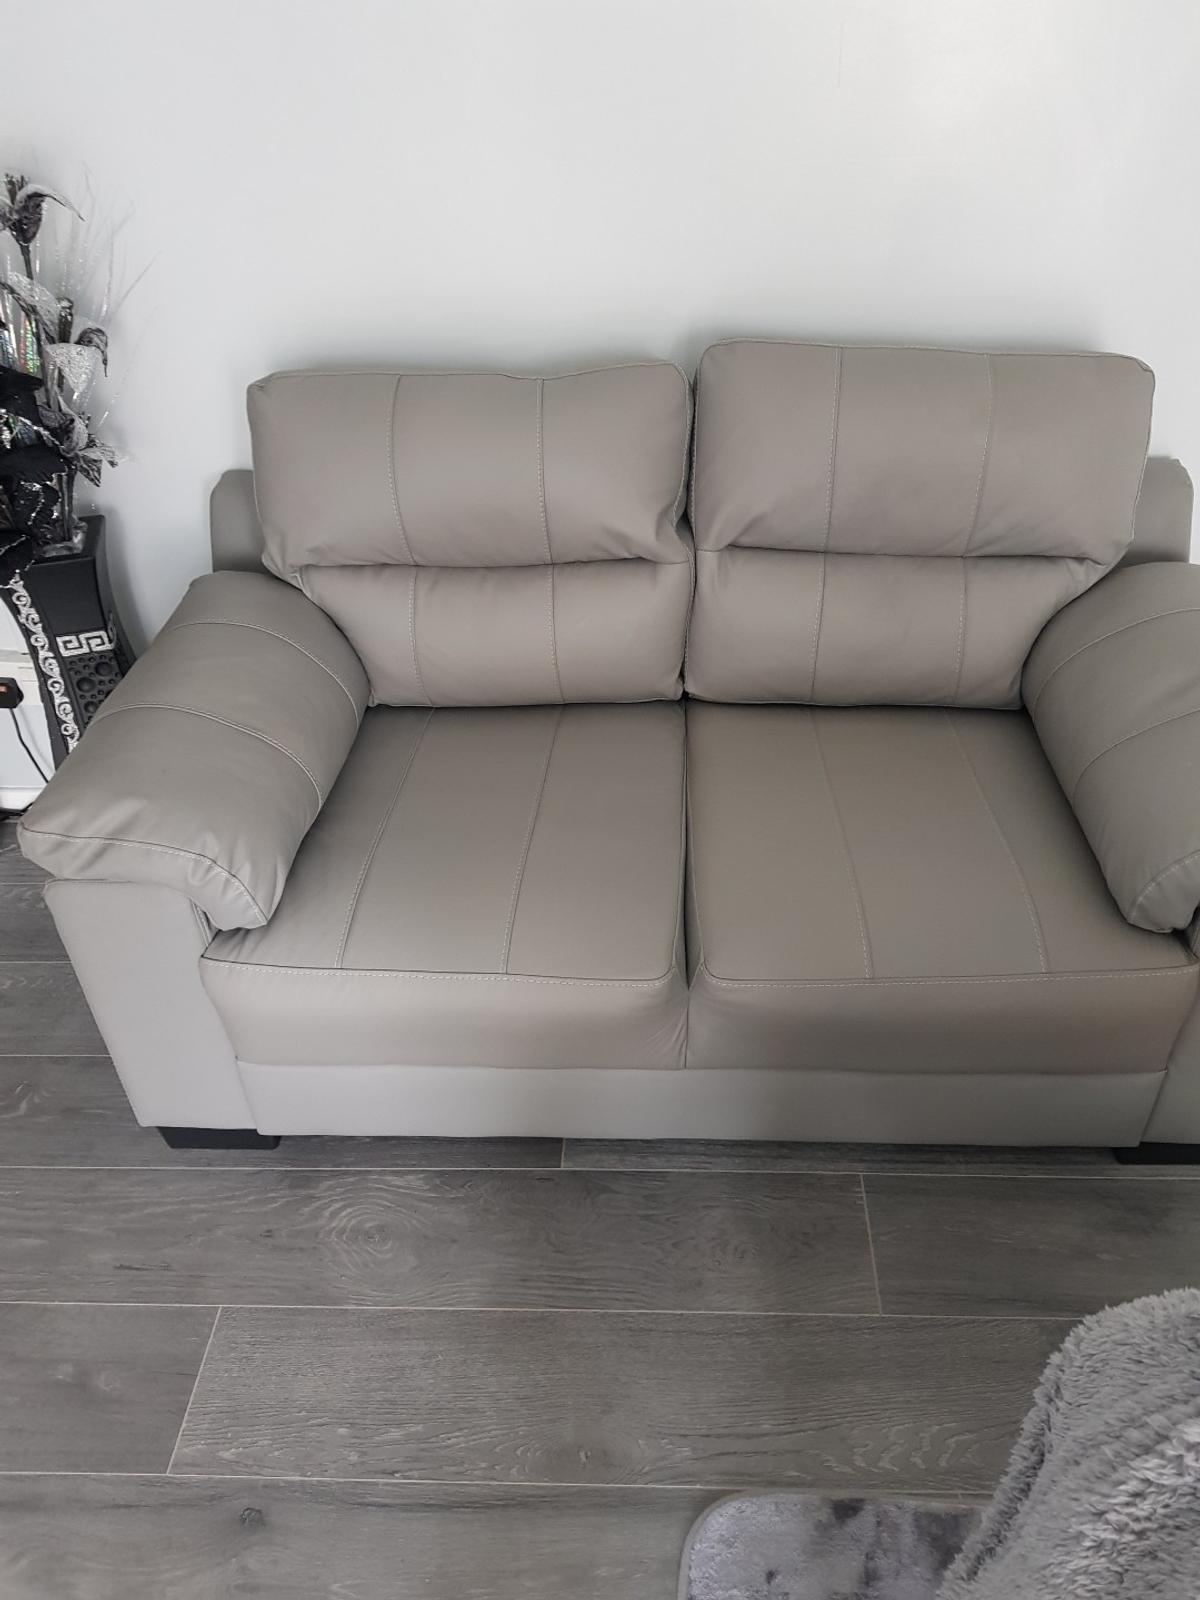 Strange 2 X 2 Light Grey Leather Sofas In B65 Sandwell For 300 00 Home Interior And Landscaping Pimpapssignezvosmurscom